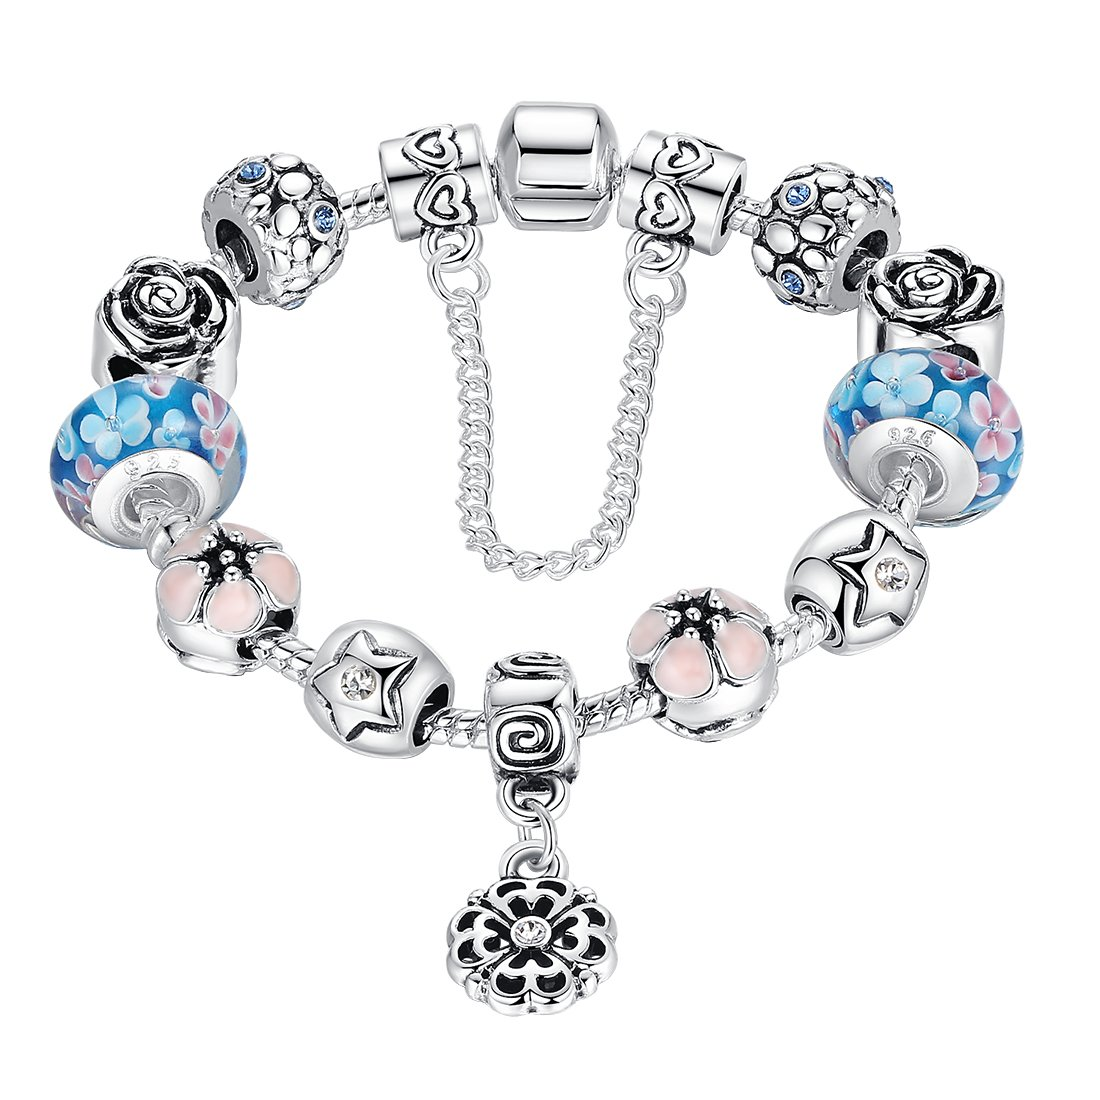 Presentski Charm Bangle Bracelet Silver Plated with Colorful Cubic Zirconia for Women HB12-18B